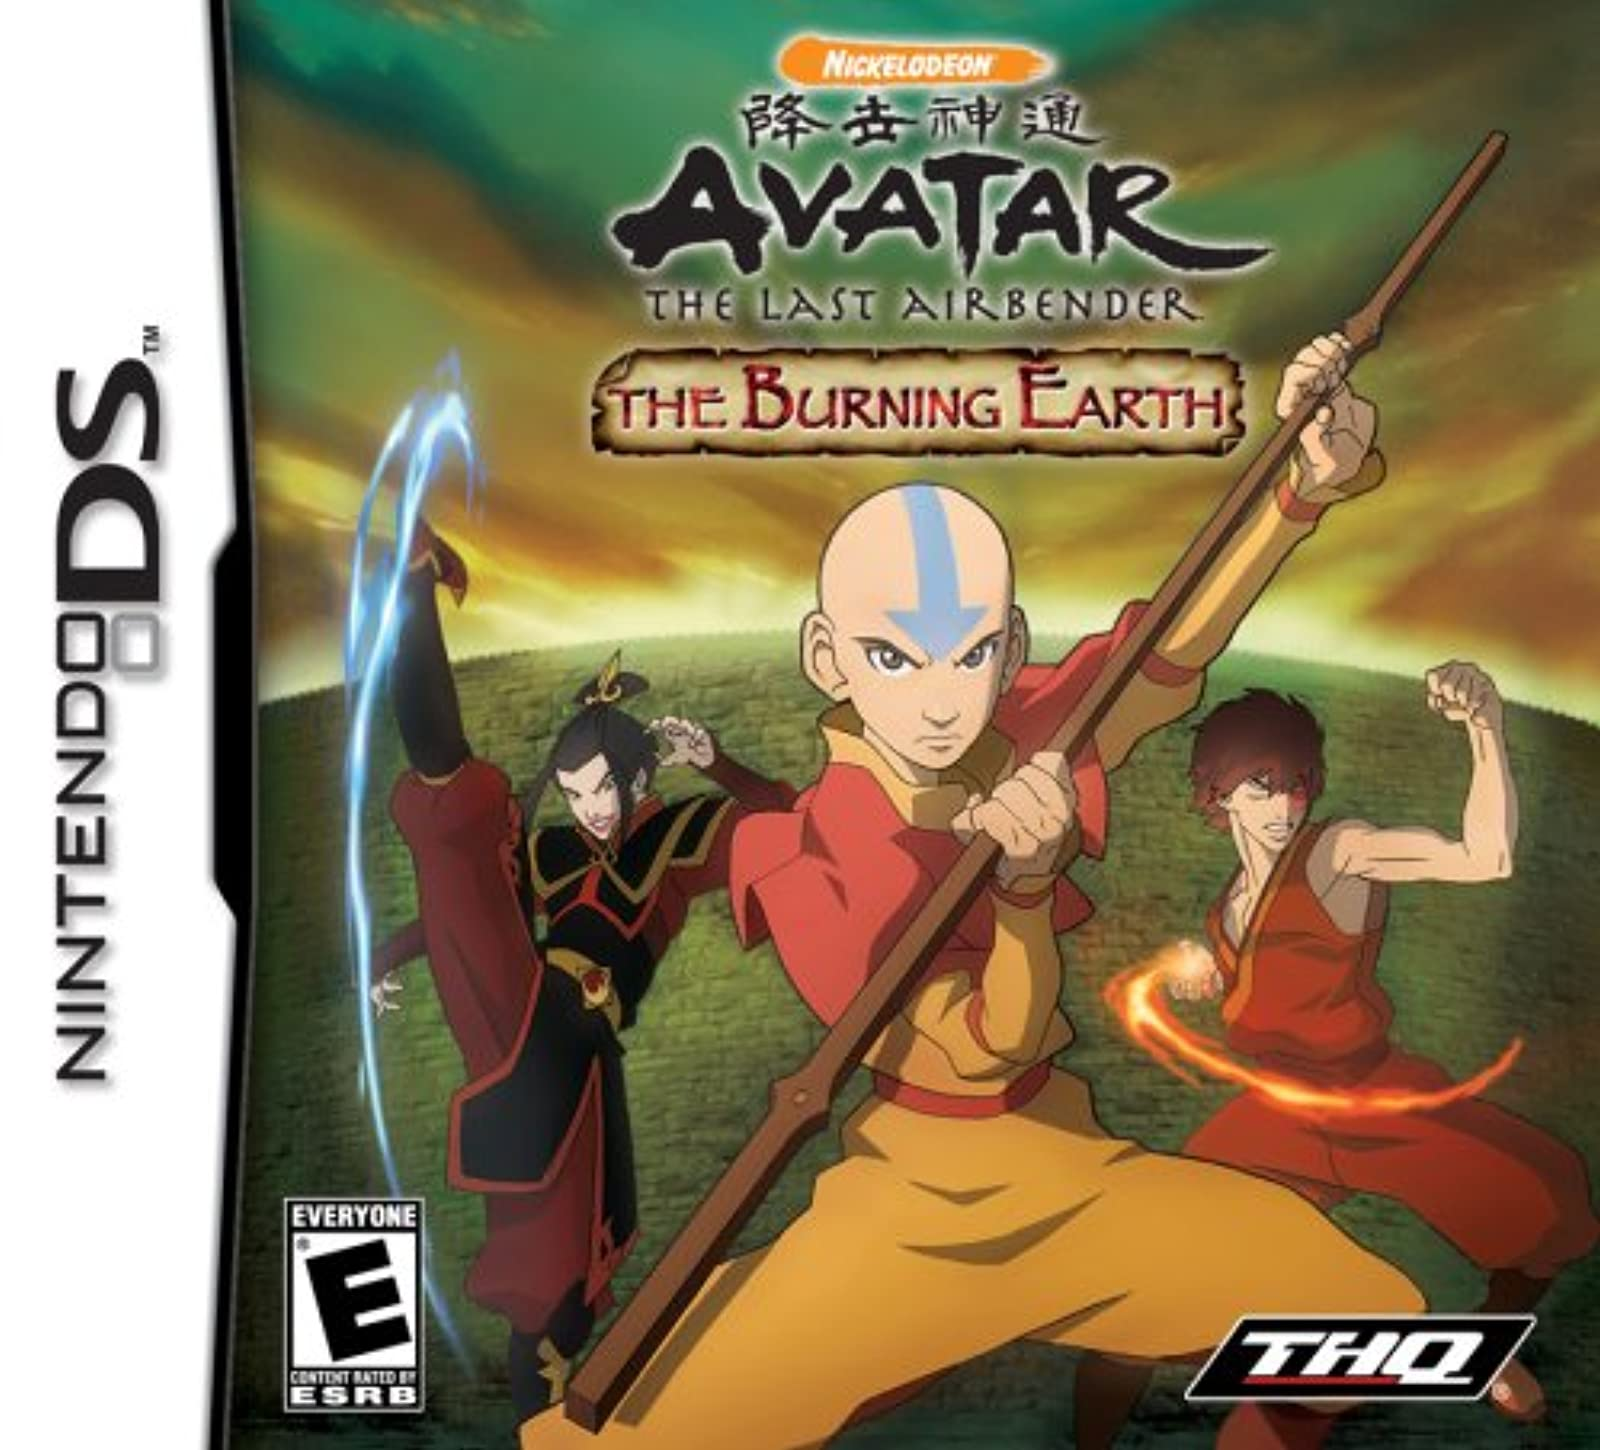 Avatar: The Last Airbender The Burning Earth For Nintendo DS DSi 3DS